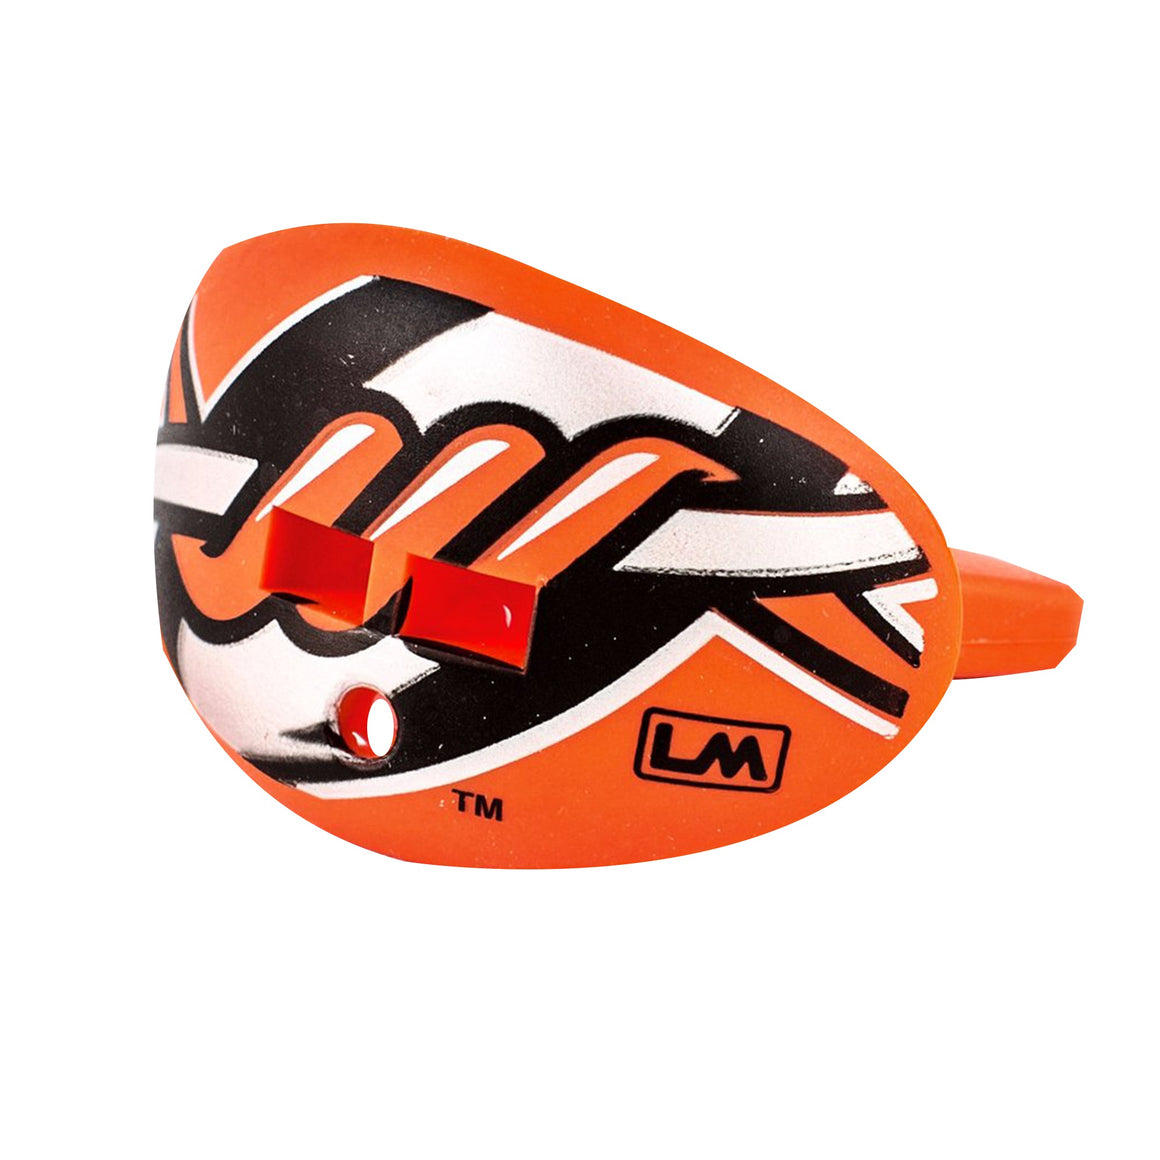 MLL - MAJOR LEAGUE LACROSSE Denver Outlaws Bengal Orange 850867006727